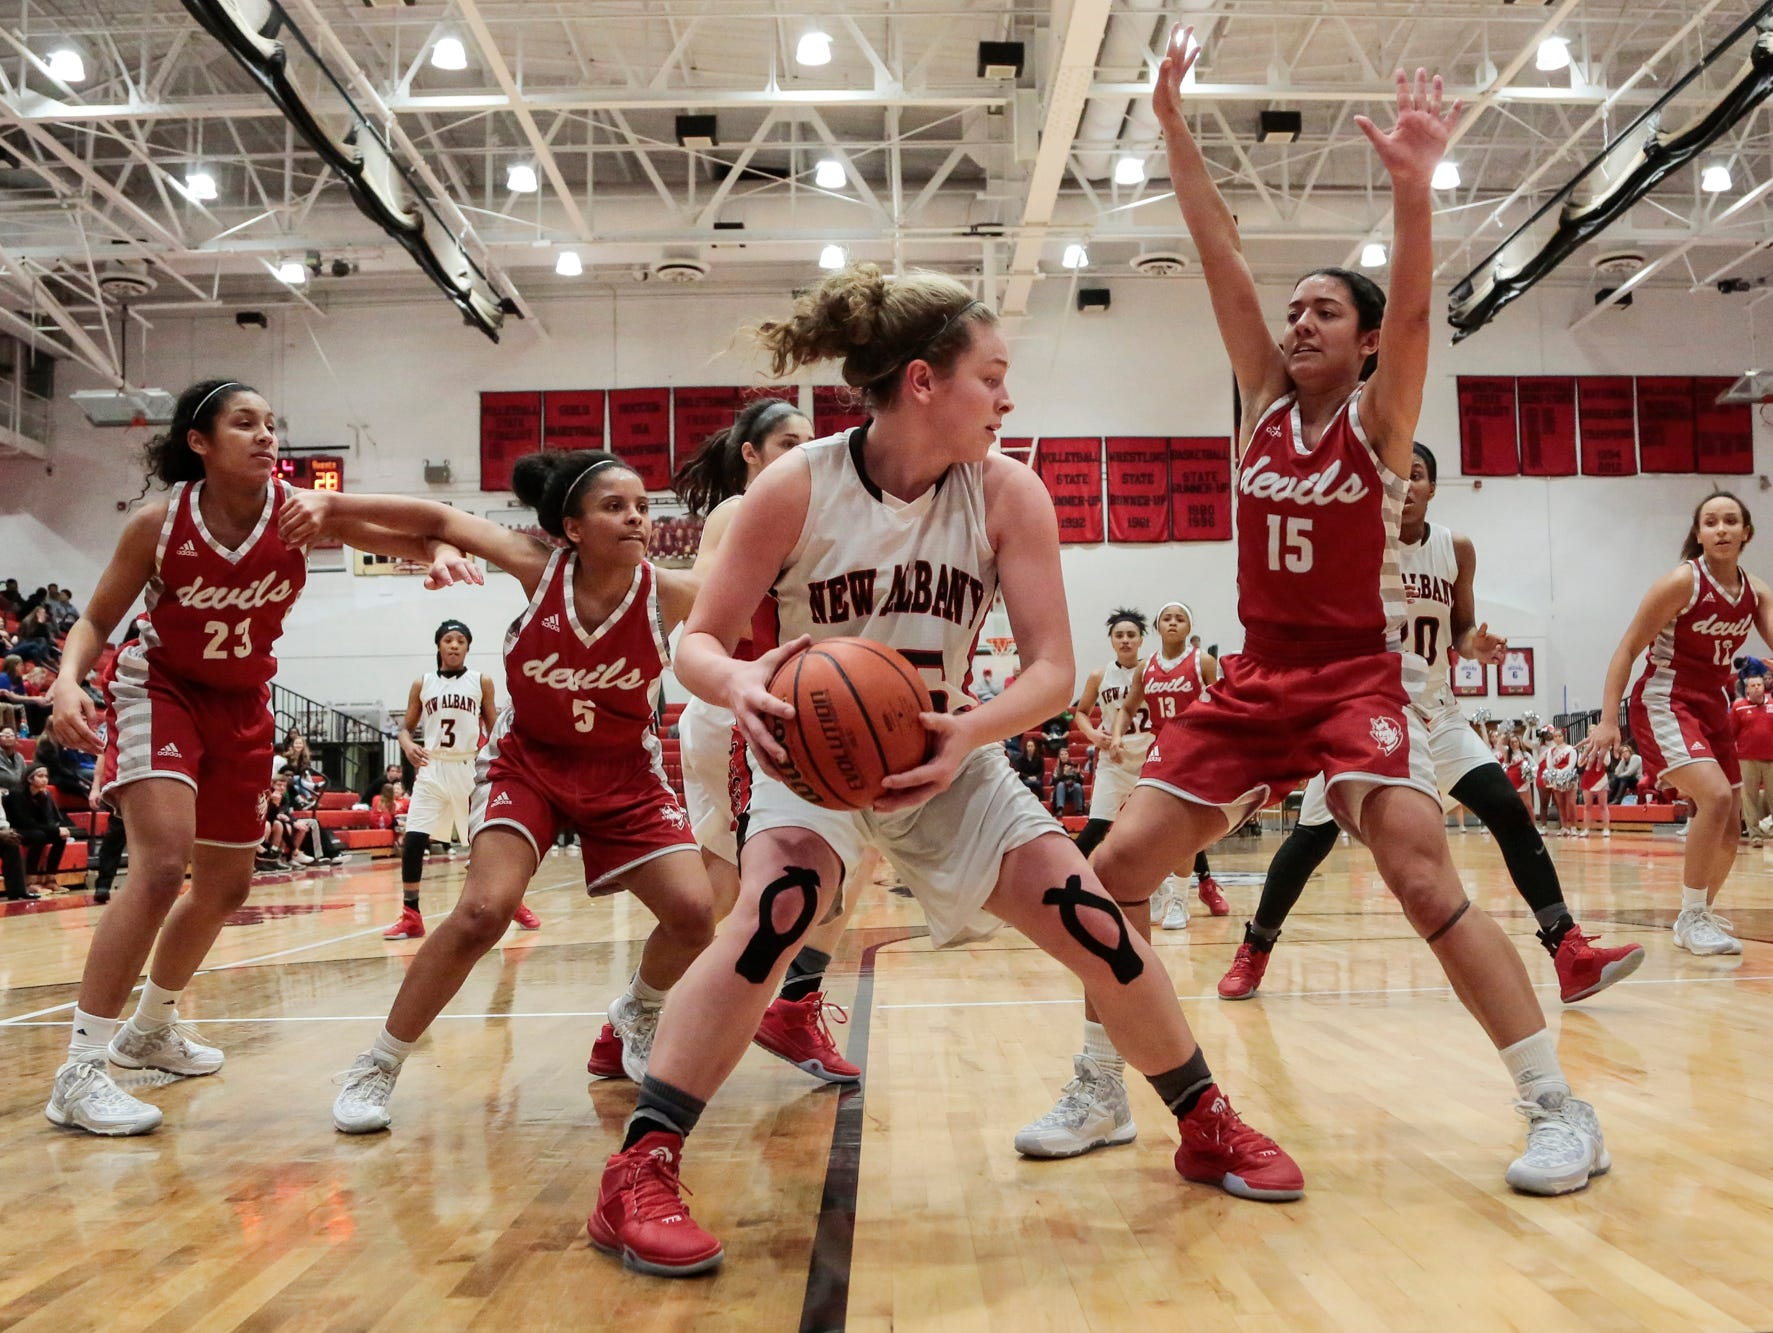 New Albany's Marissa Jones (23) looks to pass while heavily guarded by a swarm of Jeffersonville Devils during the second half of play, Wednesday, Jan. 27, 2016, at New Albany High School in New Albany, In.